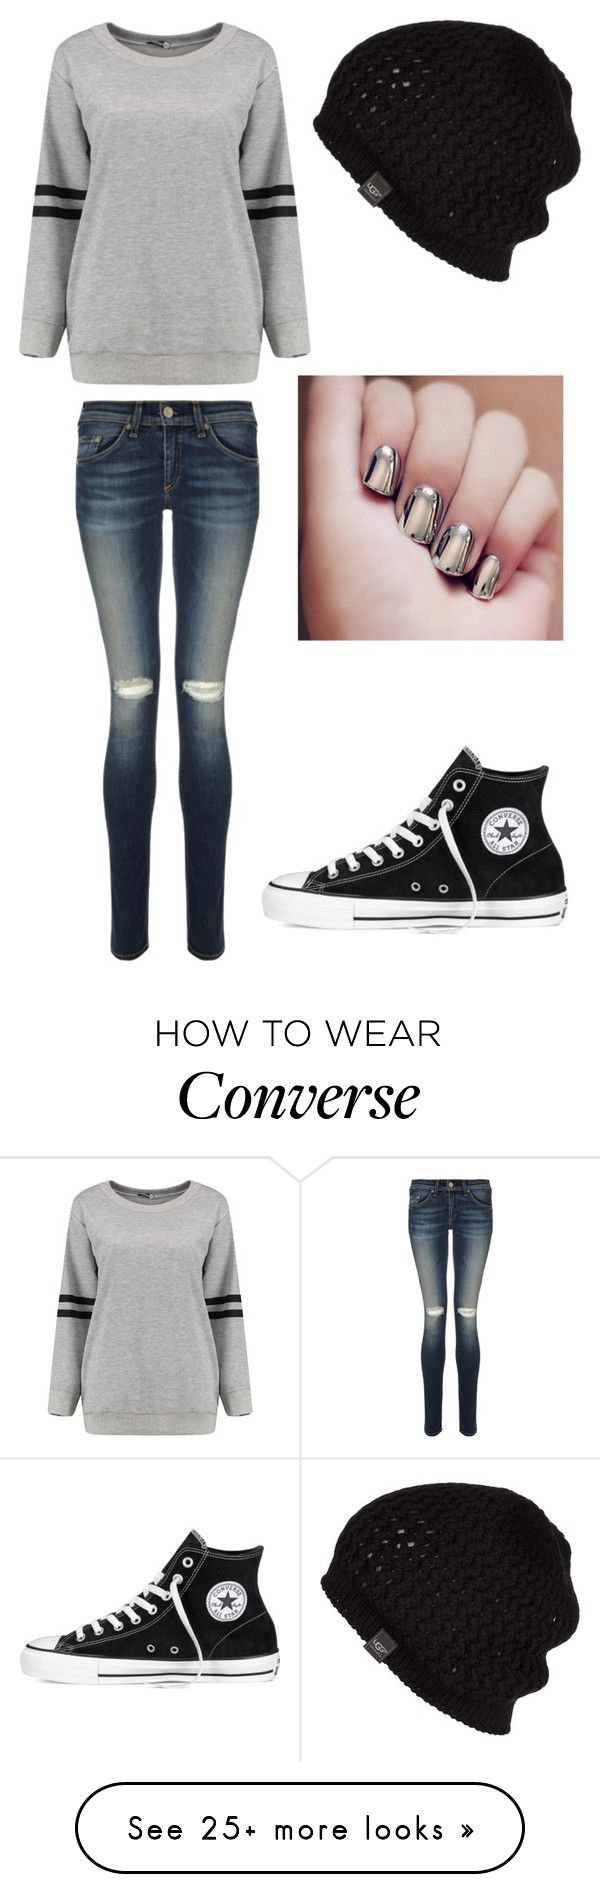 """Untitled #731"" by sarah6623 on Polyvore featuring rag & bone, UGG Australia, Converse, women's clothing, women's fashion, women, female, woman, misses and juniors"